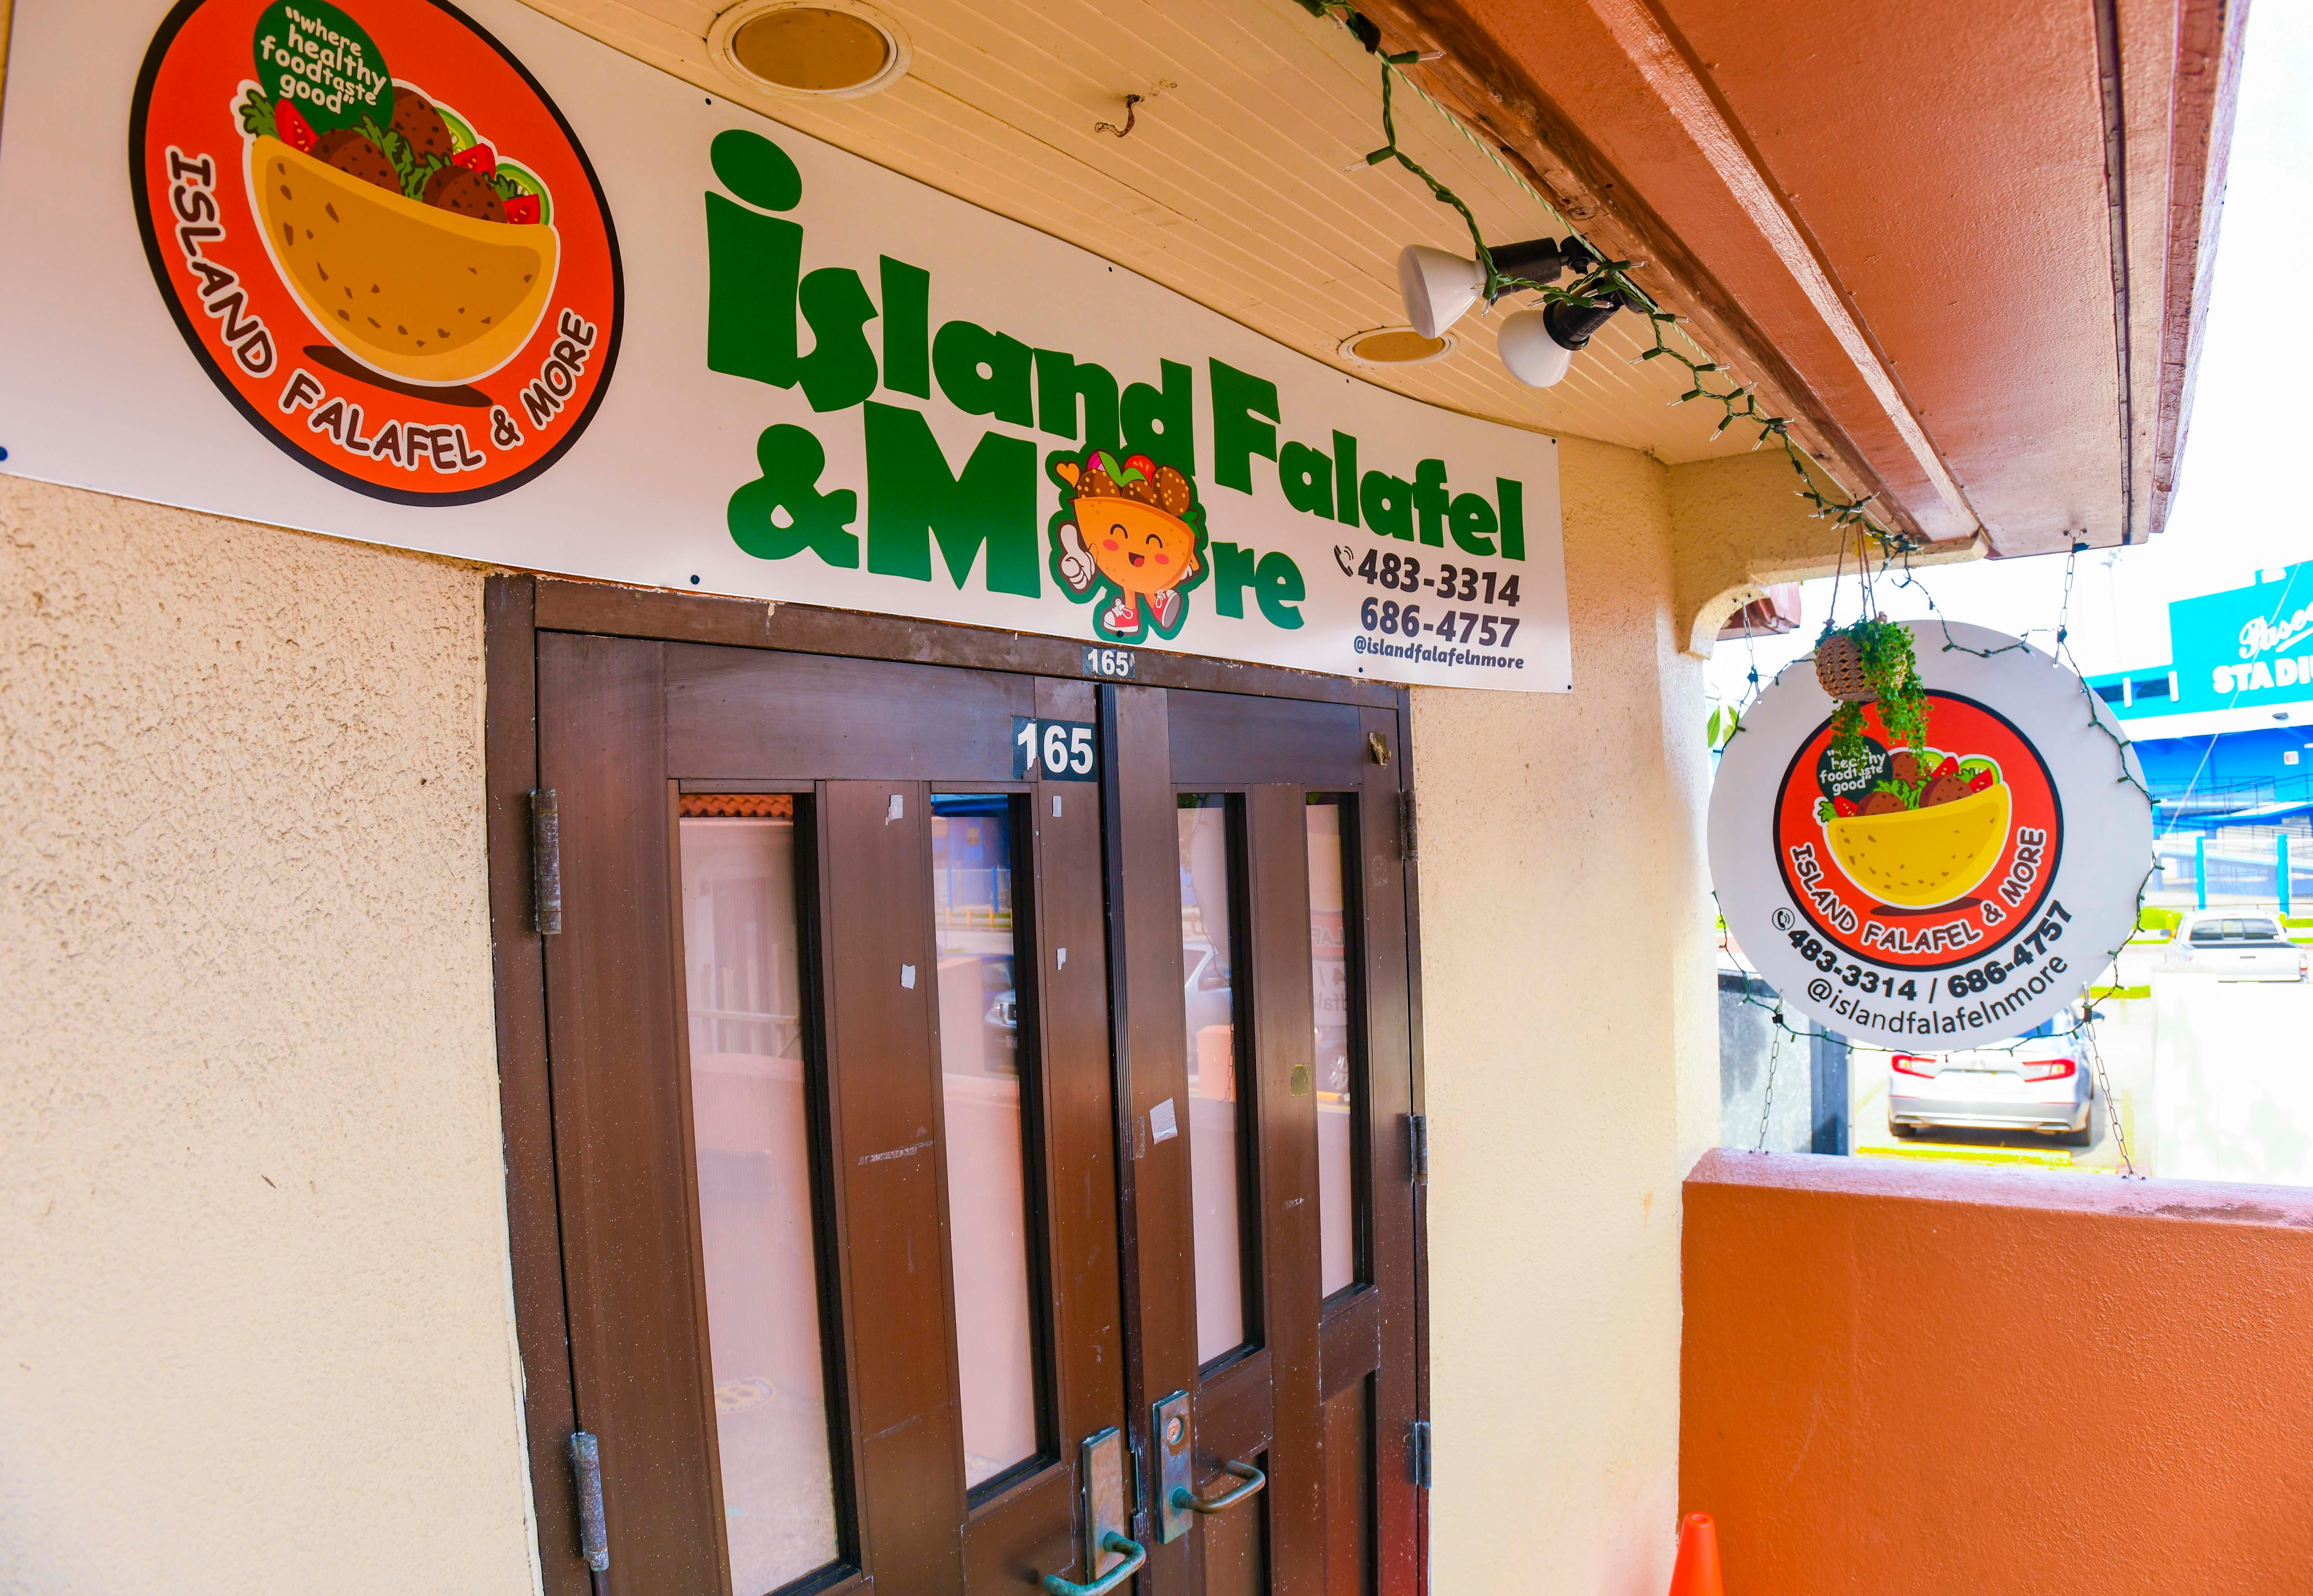 The Island Falafel & More food stand, located within the I Sengsong Chamorro, or the Chamorro Village, in Hagåtña on Dec. 17, 2020.